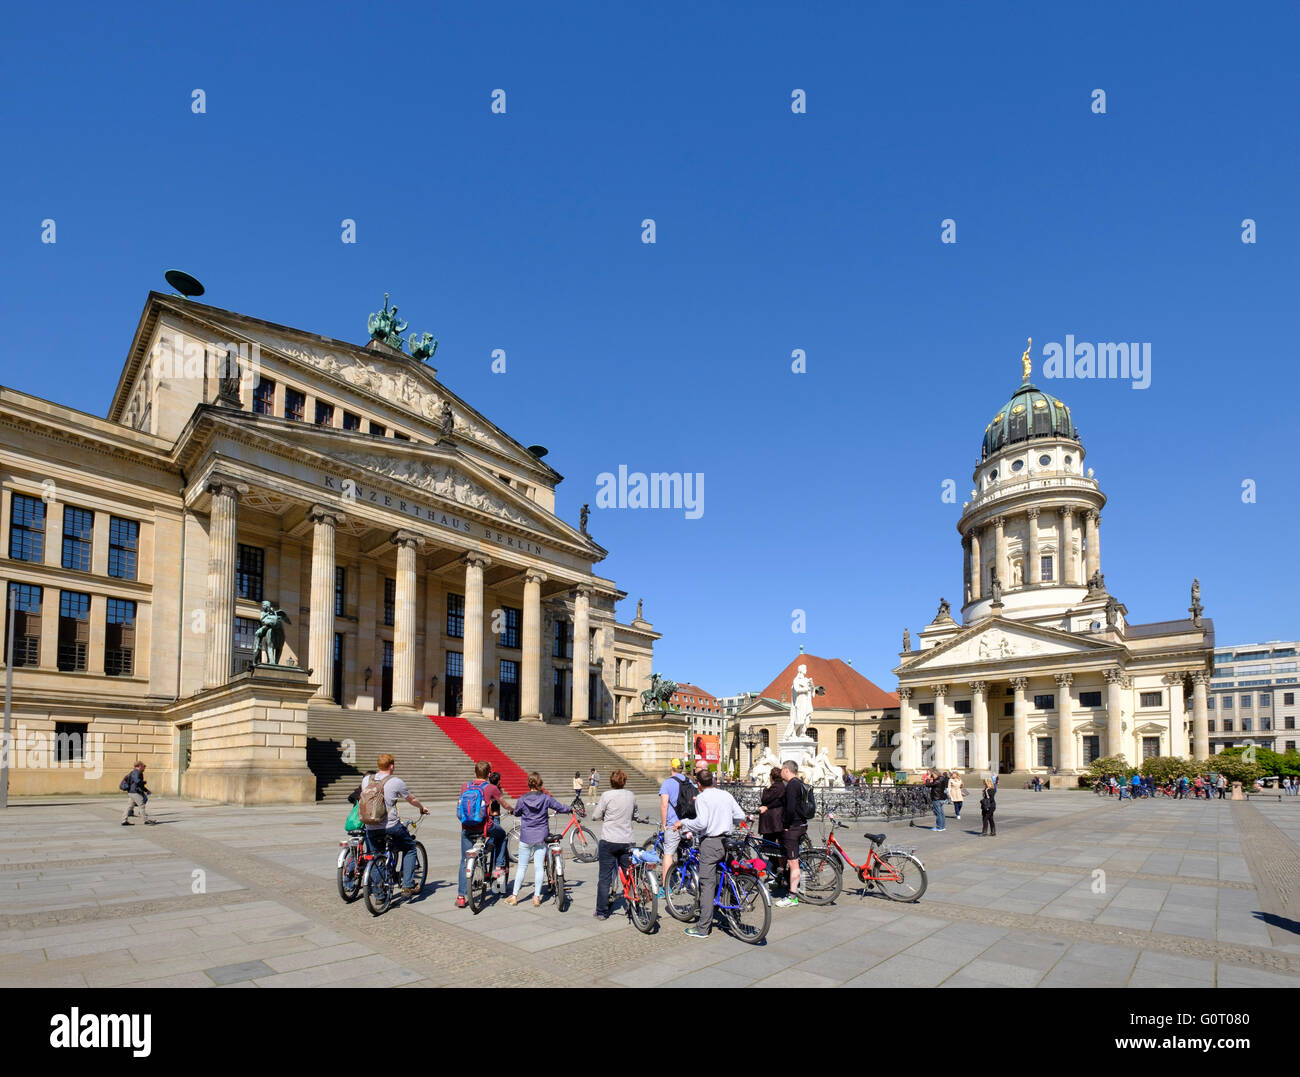 View of Gendarmenmarkt square with Konzerthaus on the left  in Mitte Berlin Germany - Stock Image